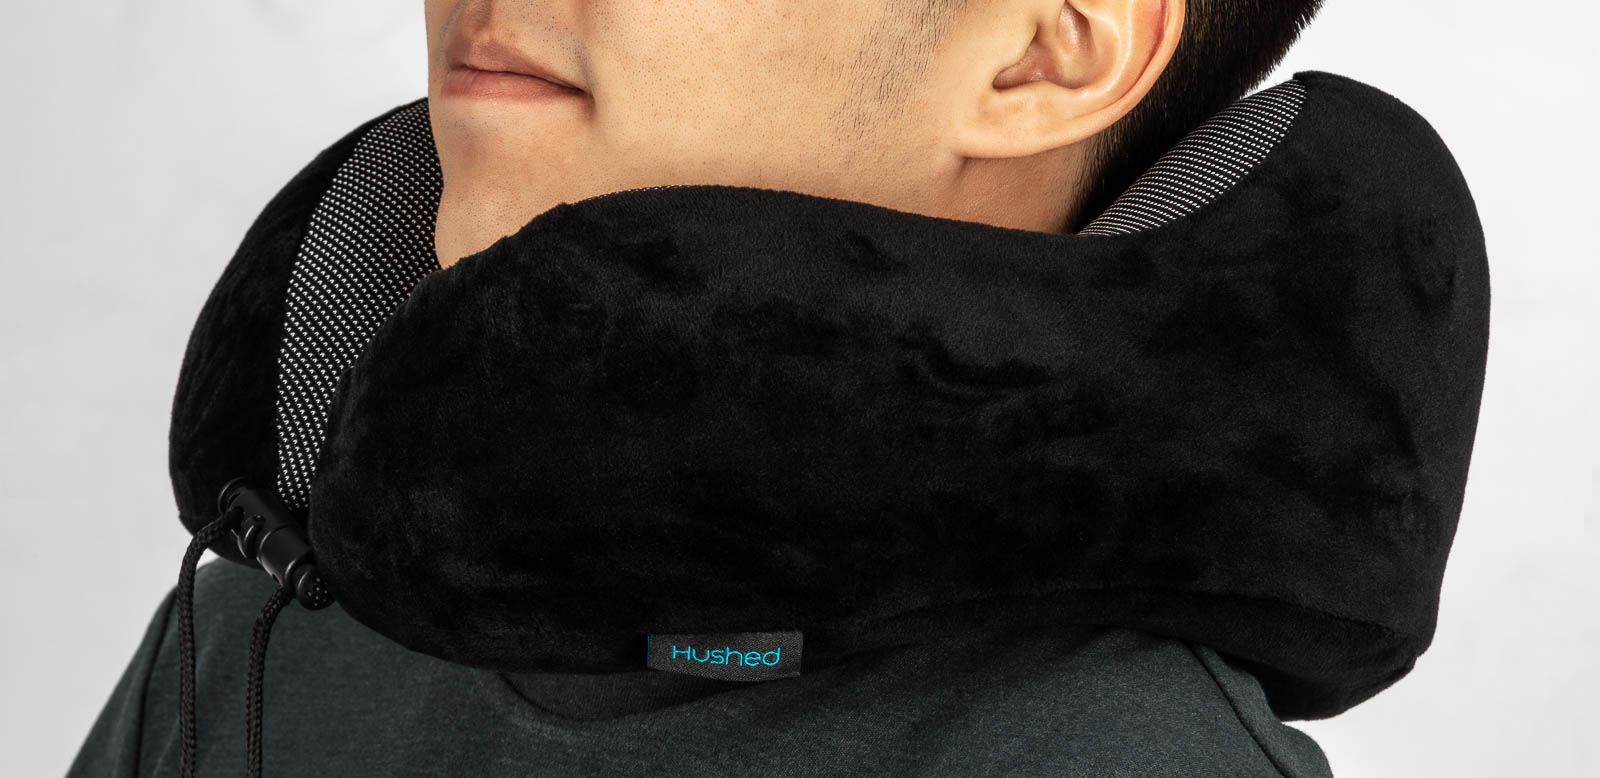 Travel Pillow in use - Amazon product photography